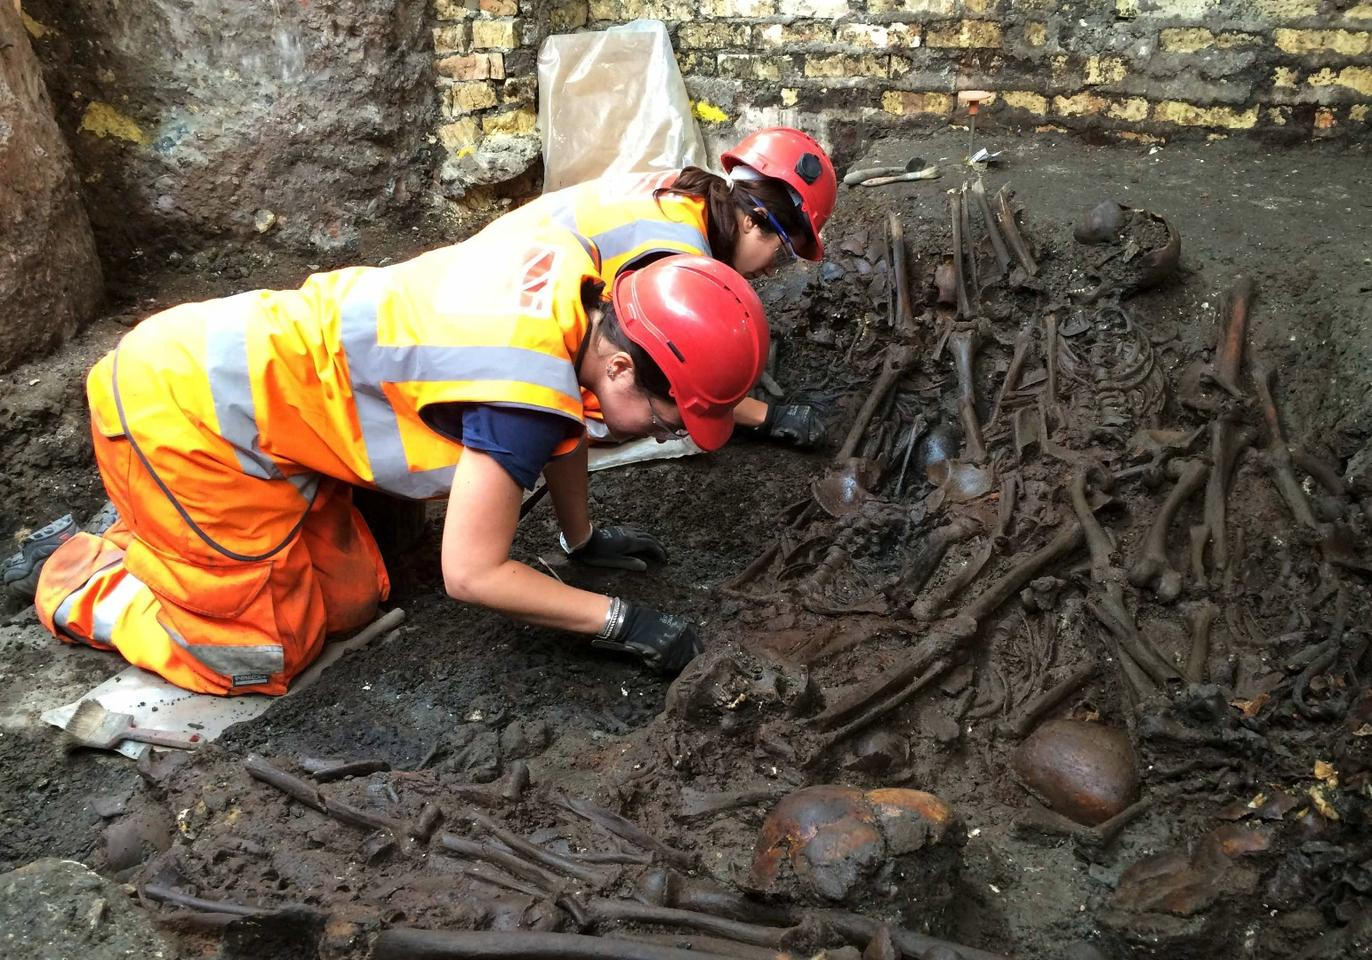 The site where the bones were discovered was part of the Crossrails project to build a station at Liverpool Street in London